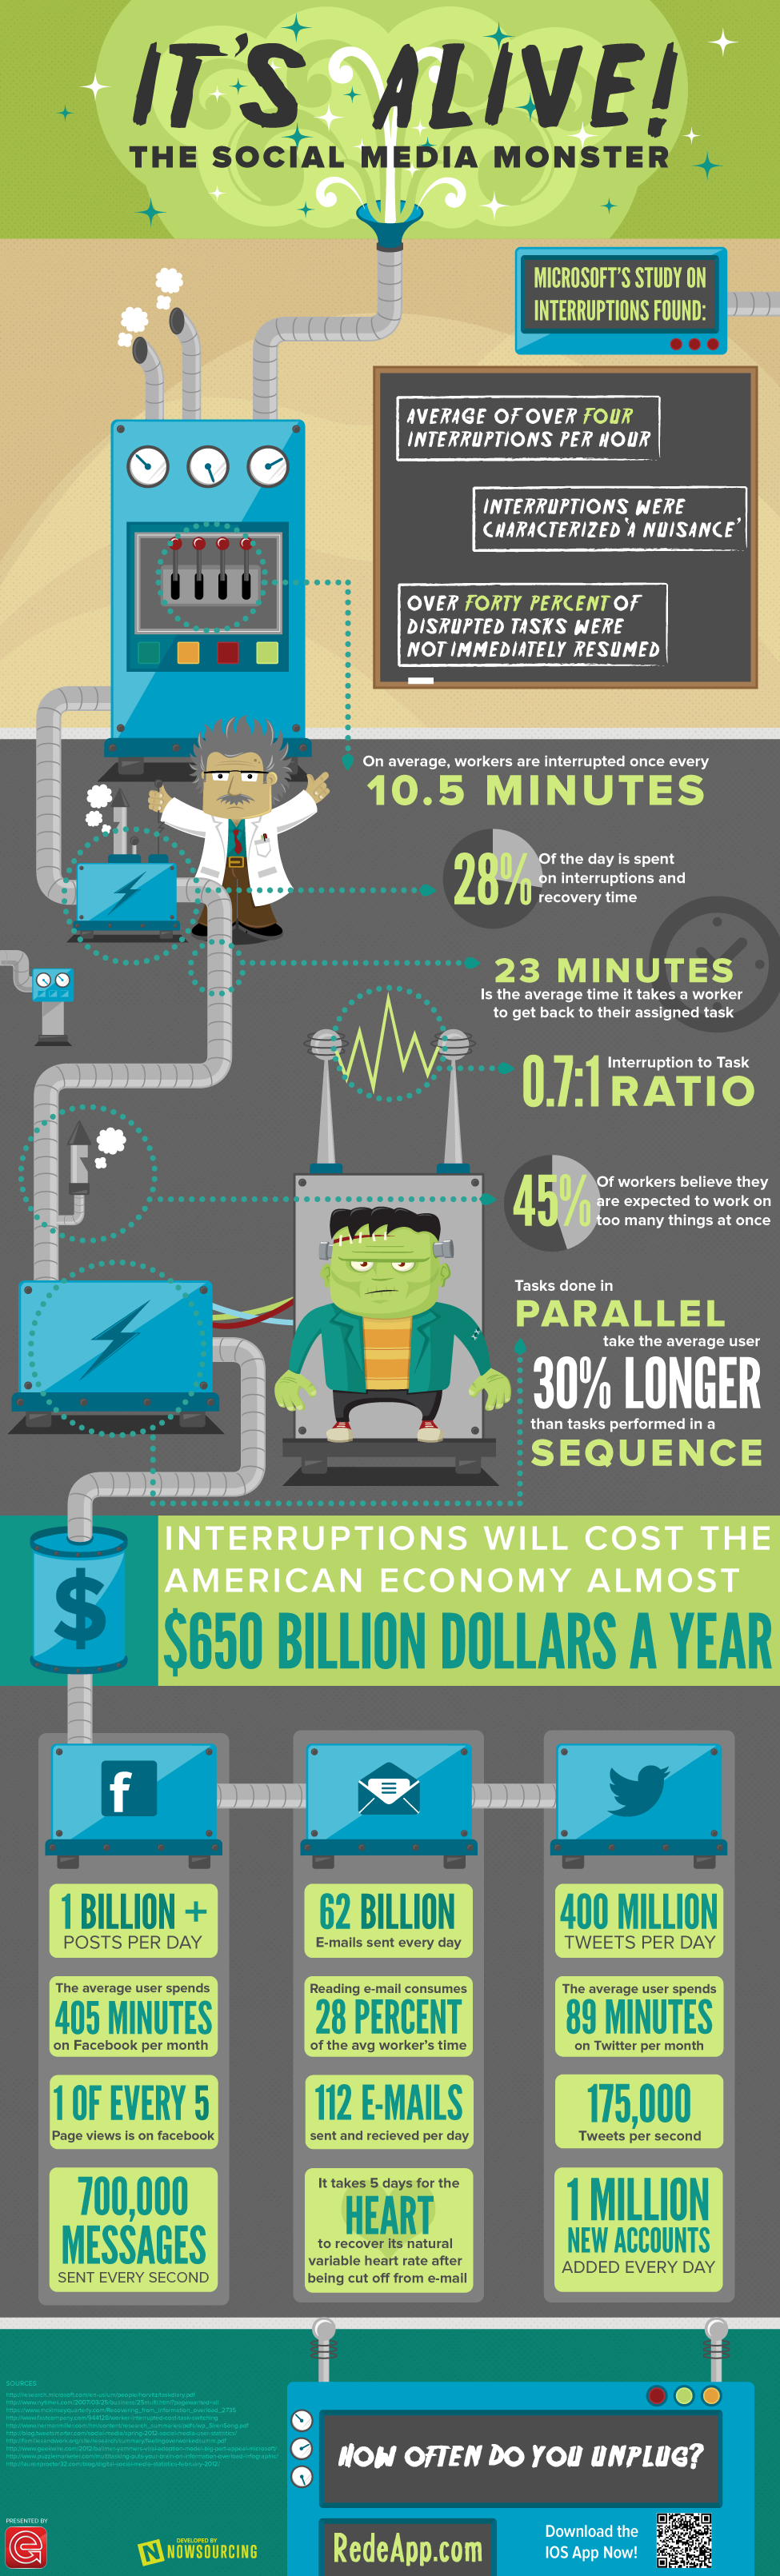 infographic social media monster